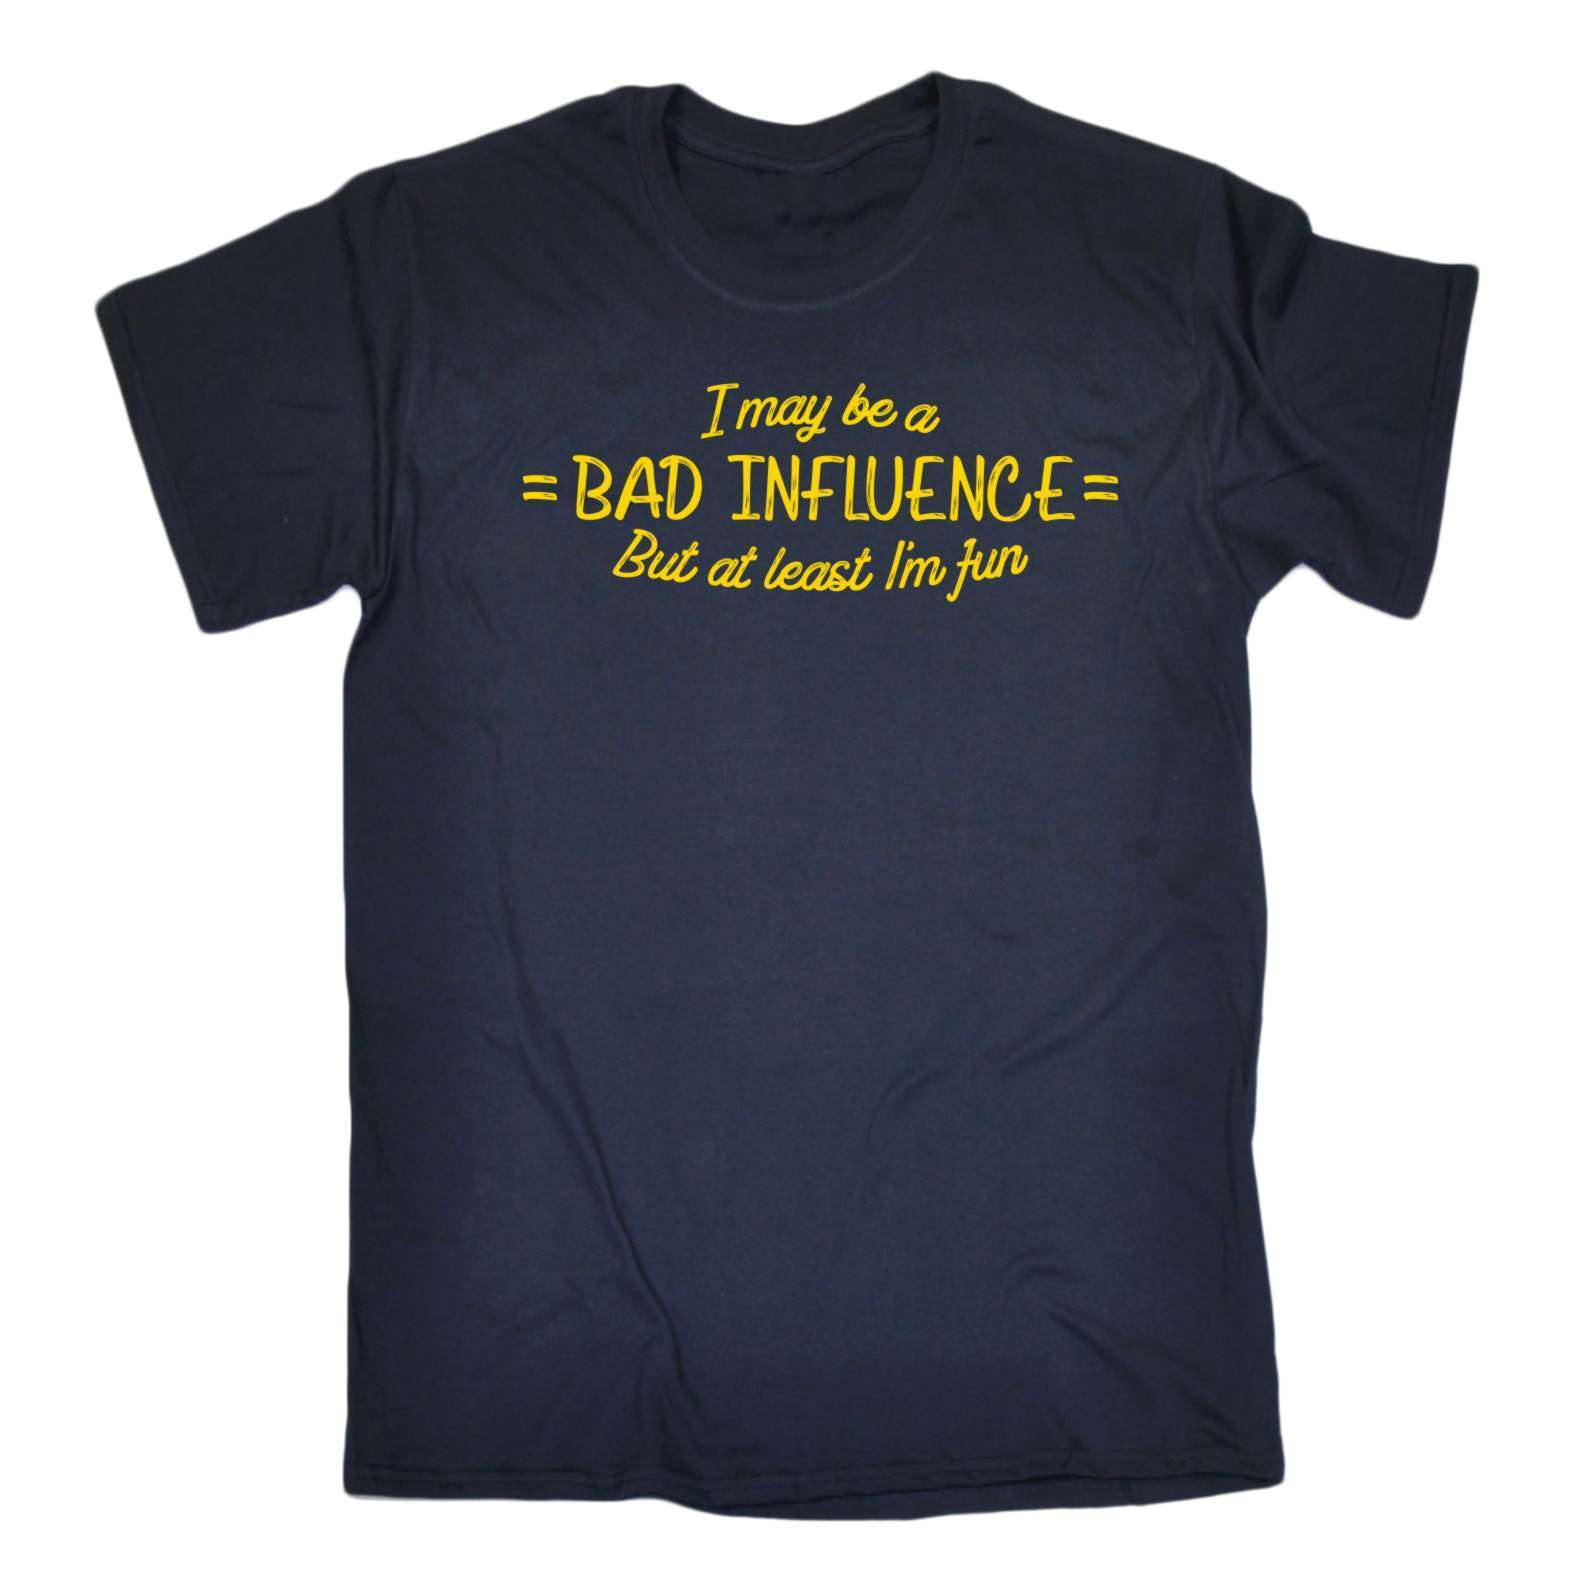 T Shirt Men Summer Casual I May Be A Bad Influence But At Least Im Fun Funny Joke Comedy Humour T-SHIRT ...